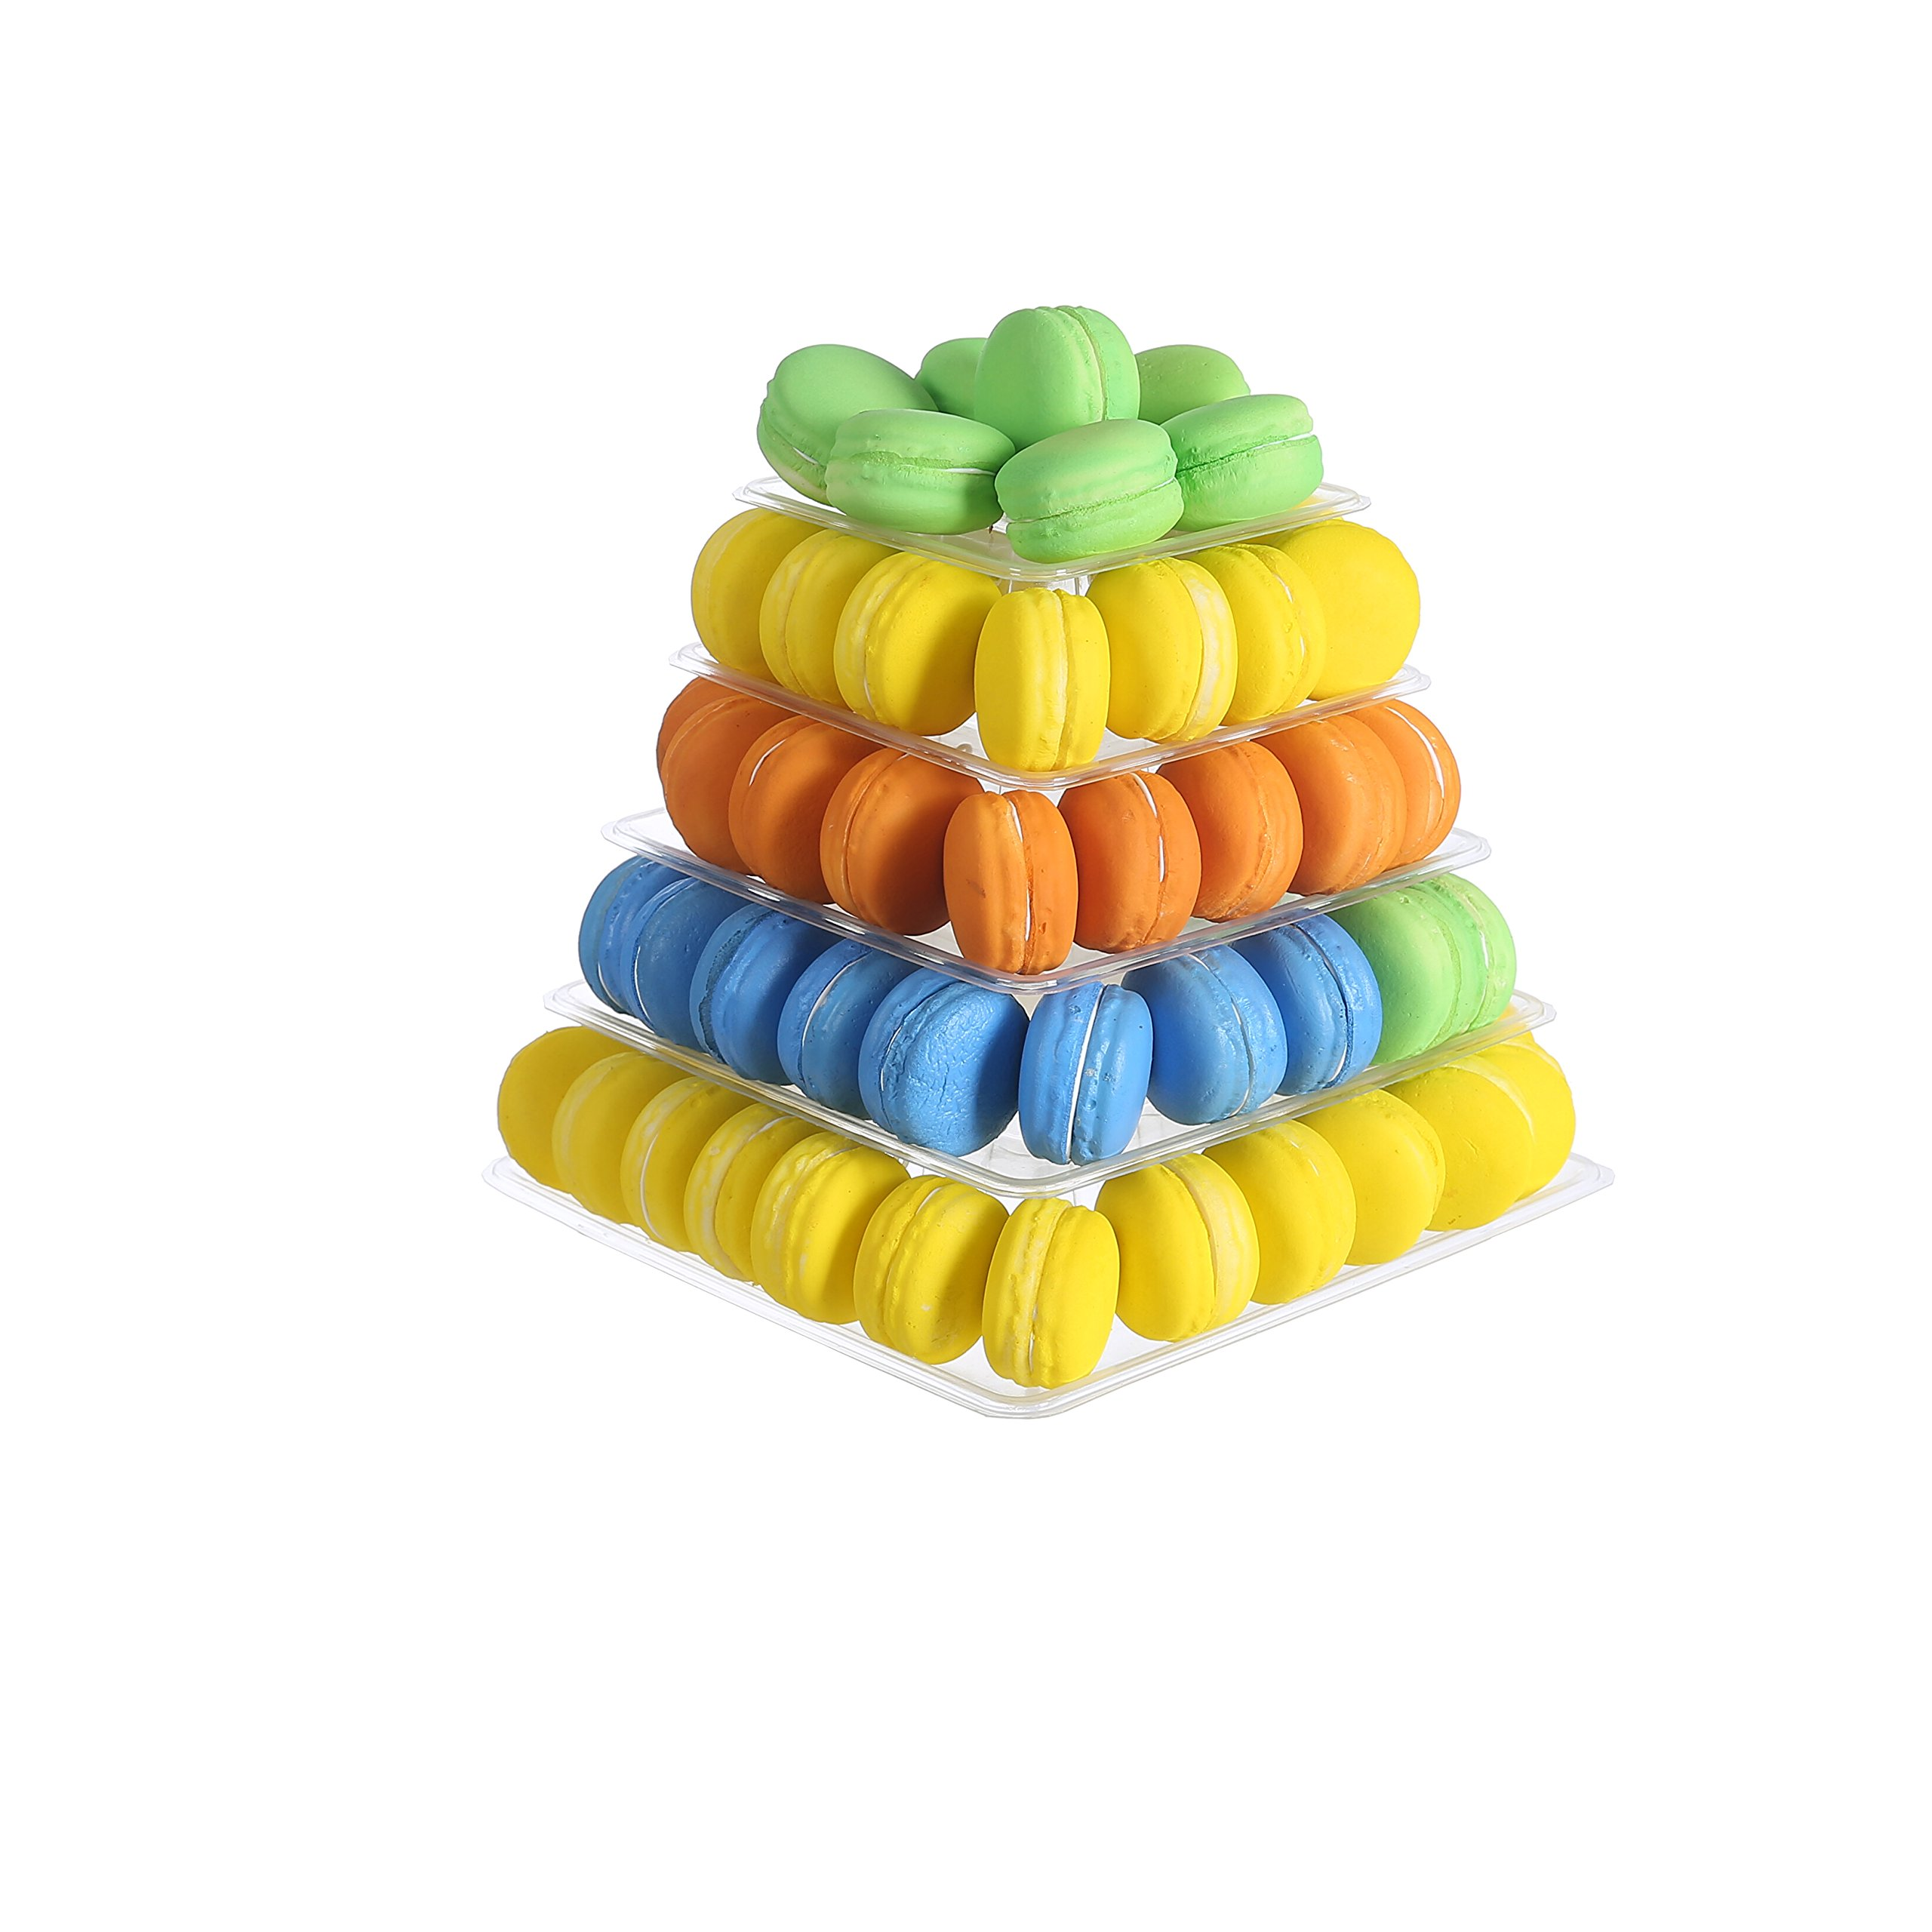 5 Tier Clear Square Plastic Macaron Tower Stand Wedding Birthday Display